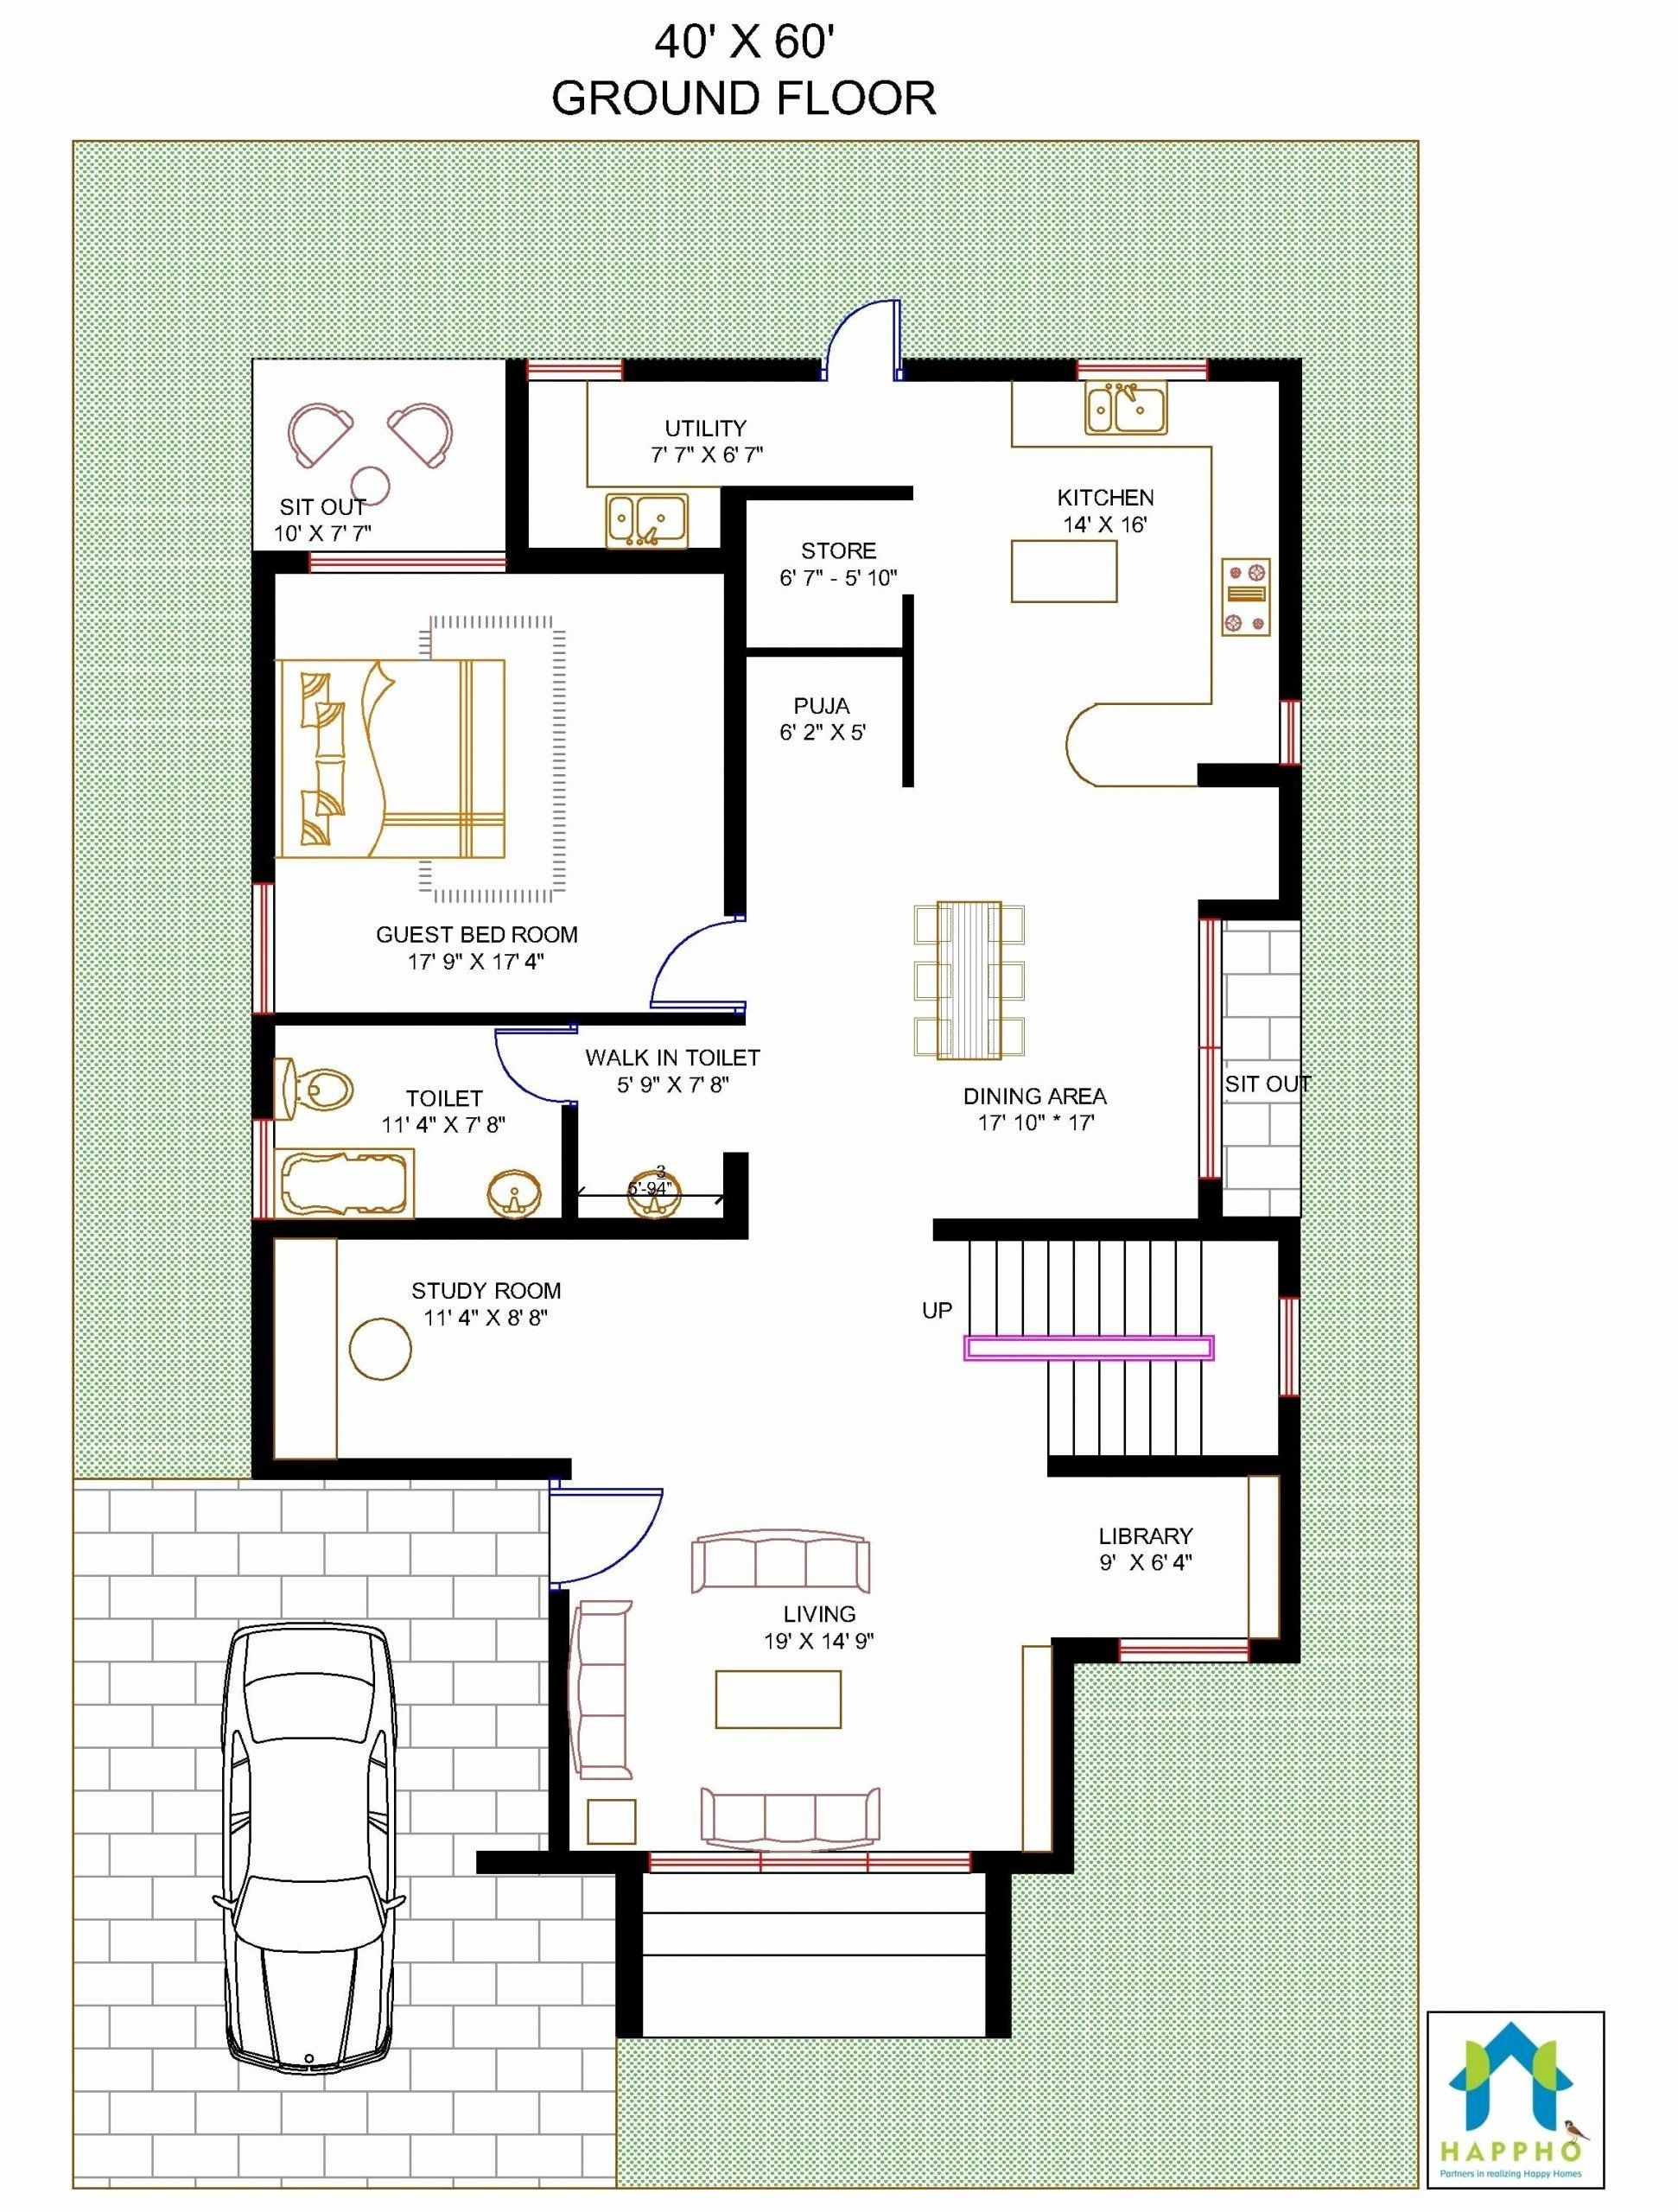 Southern Style House Plan 4 Beds 3 Baths 2400 Sq Ft Plan 320 139 Country Style House Plans Multigenerational House Plans Country House Plans